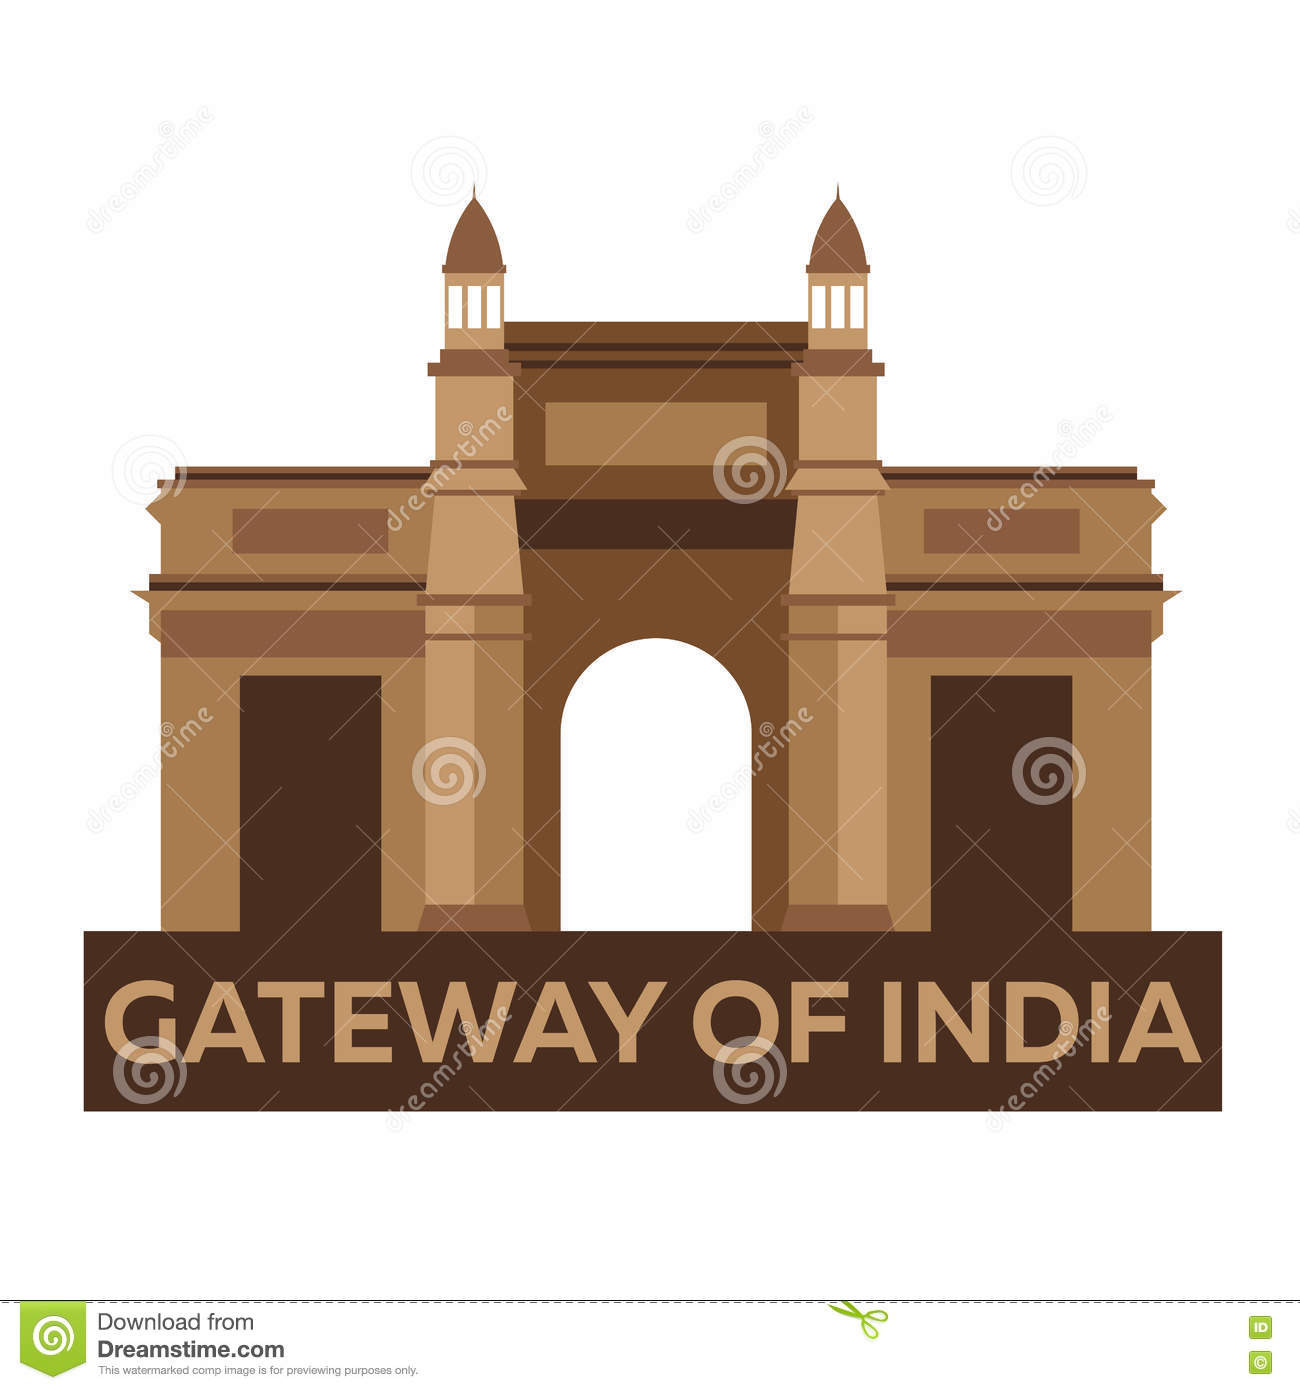 Modern Indian Architecture Google Search: Gateway Of India. Indian Architecture. Mumbai. Modern Flat